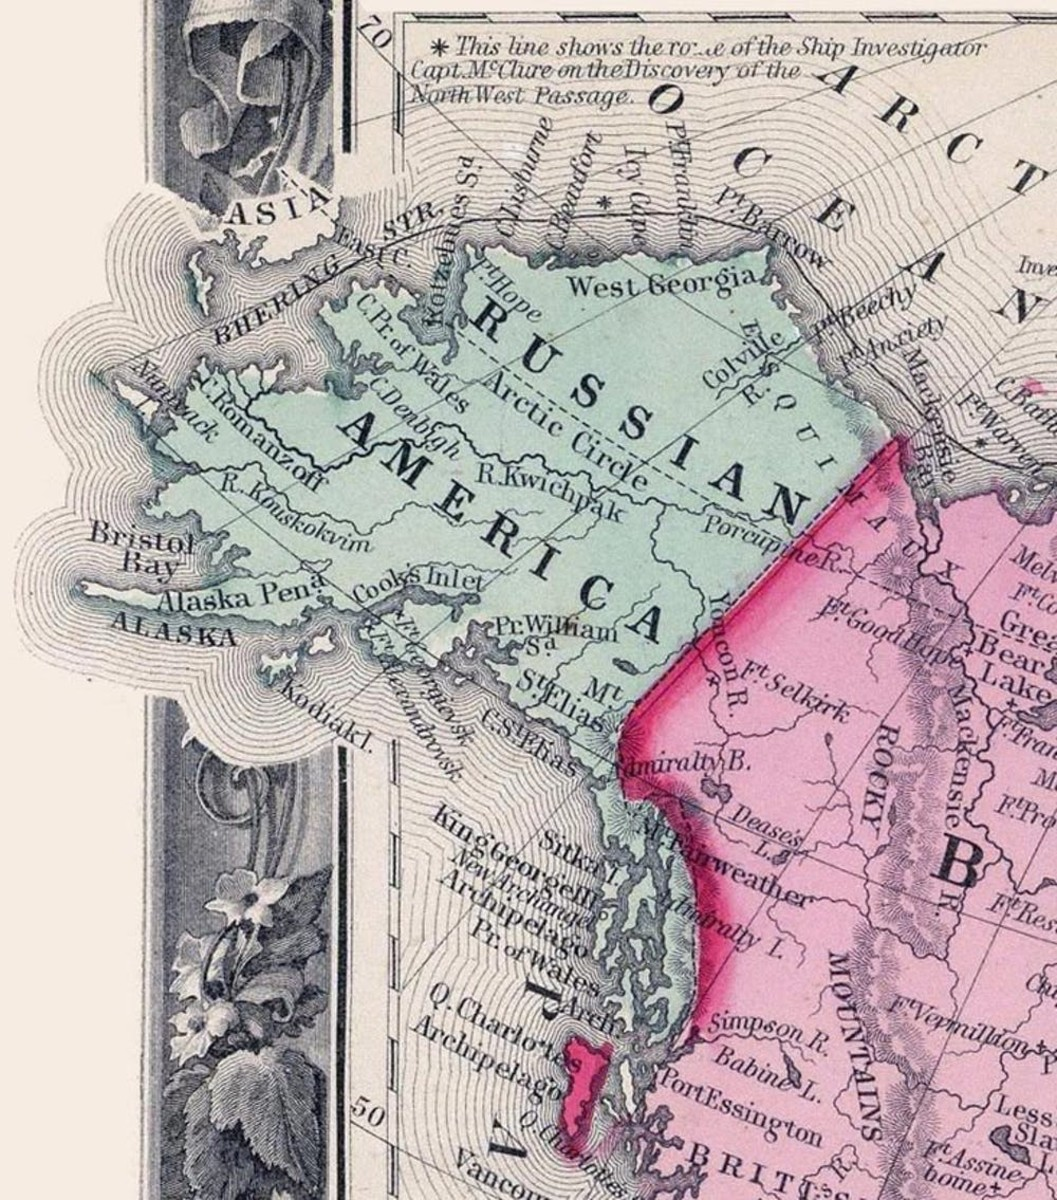 """Pictured: A map from before the U.S. purchased Alaska. In this 1860 map, Russian America (Alaska) was to the west of British America (Canada). Excerpt from the """"Map of North America. Showing its Political Divisions, and Recent Discoveries in the Polar Regions"""" in Mitchell's New General Atlas, Containing Maps Of The Various Countries Of The World, Plans Of Cities, Etc. Published By S. Augustus Mitchell, Jr. No. 31 South Sixth Street. 1860."""